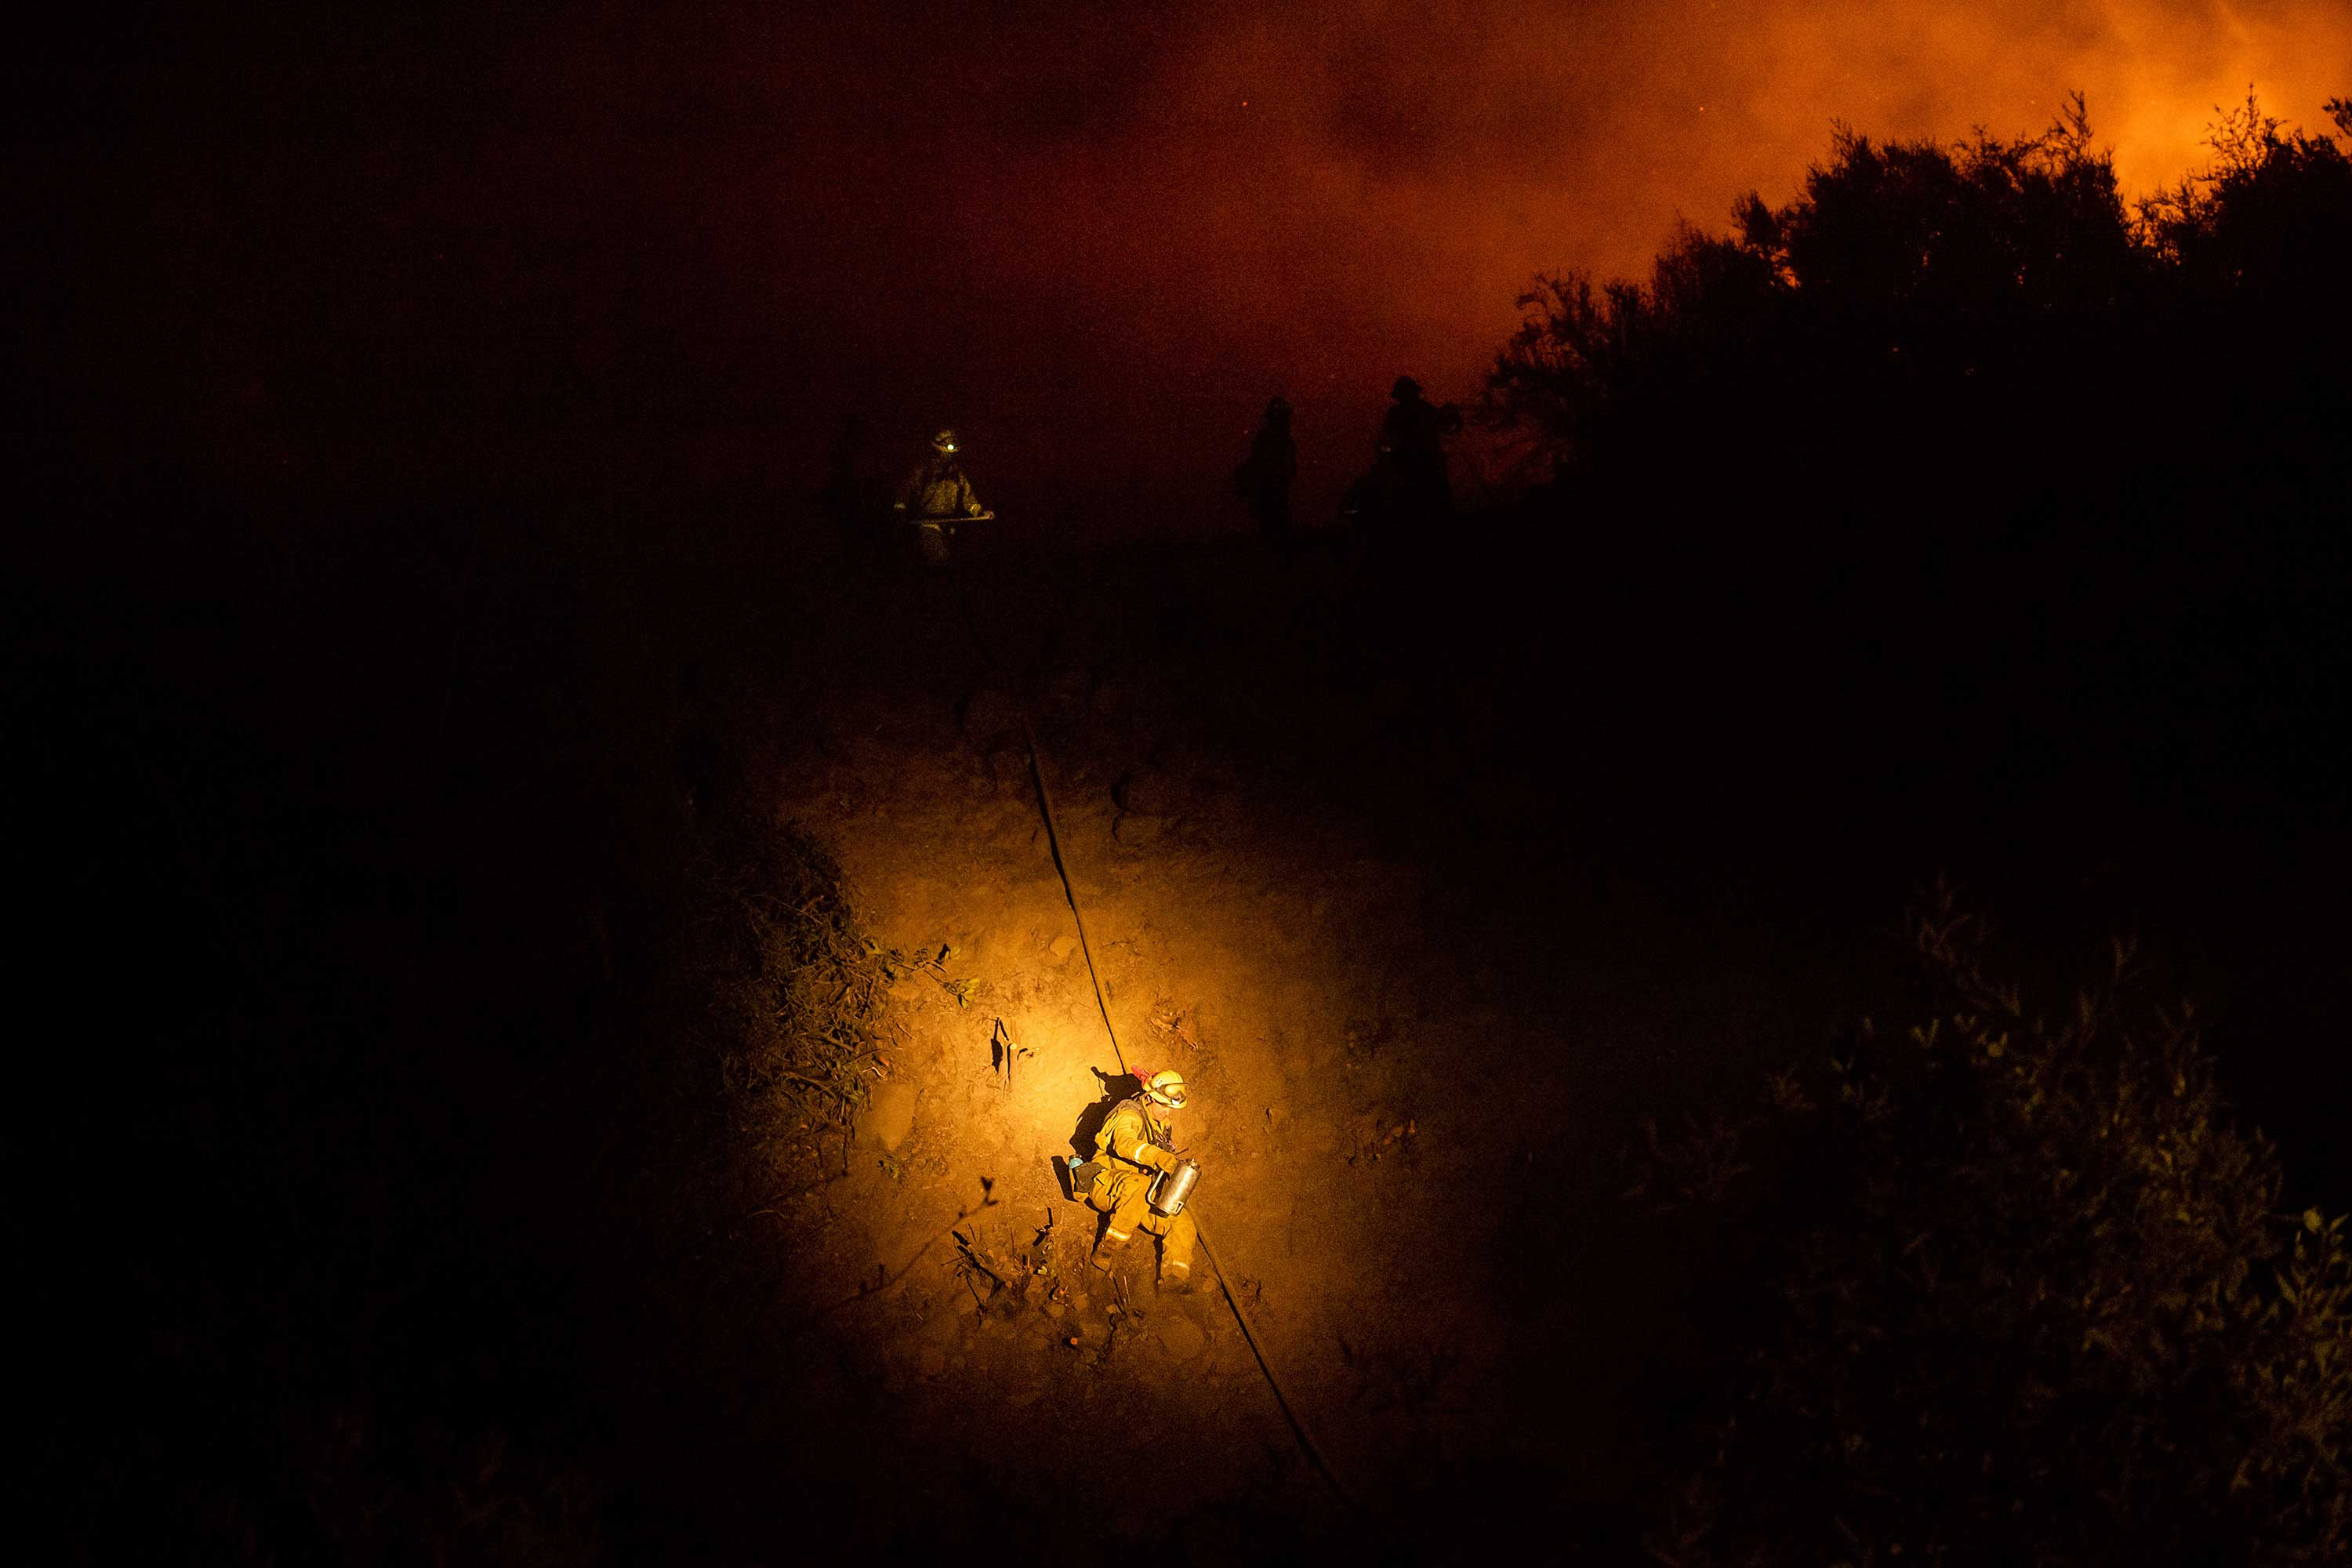 <div class='meta'><div class='origin-logo' data-origin='none'></div><span class='caption-text' data-credit='Noah Berger/AP Photo'>Firefighter Brandon Esquer makes his way down a hillside while battling the Ranch Fire, part of the Mendocino Complex Fire, on Tuesday, Aug. 7, 2018, near Ladoga, Calif.</span></div>